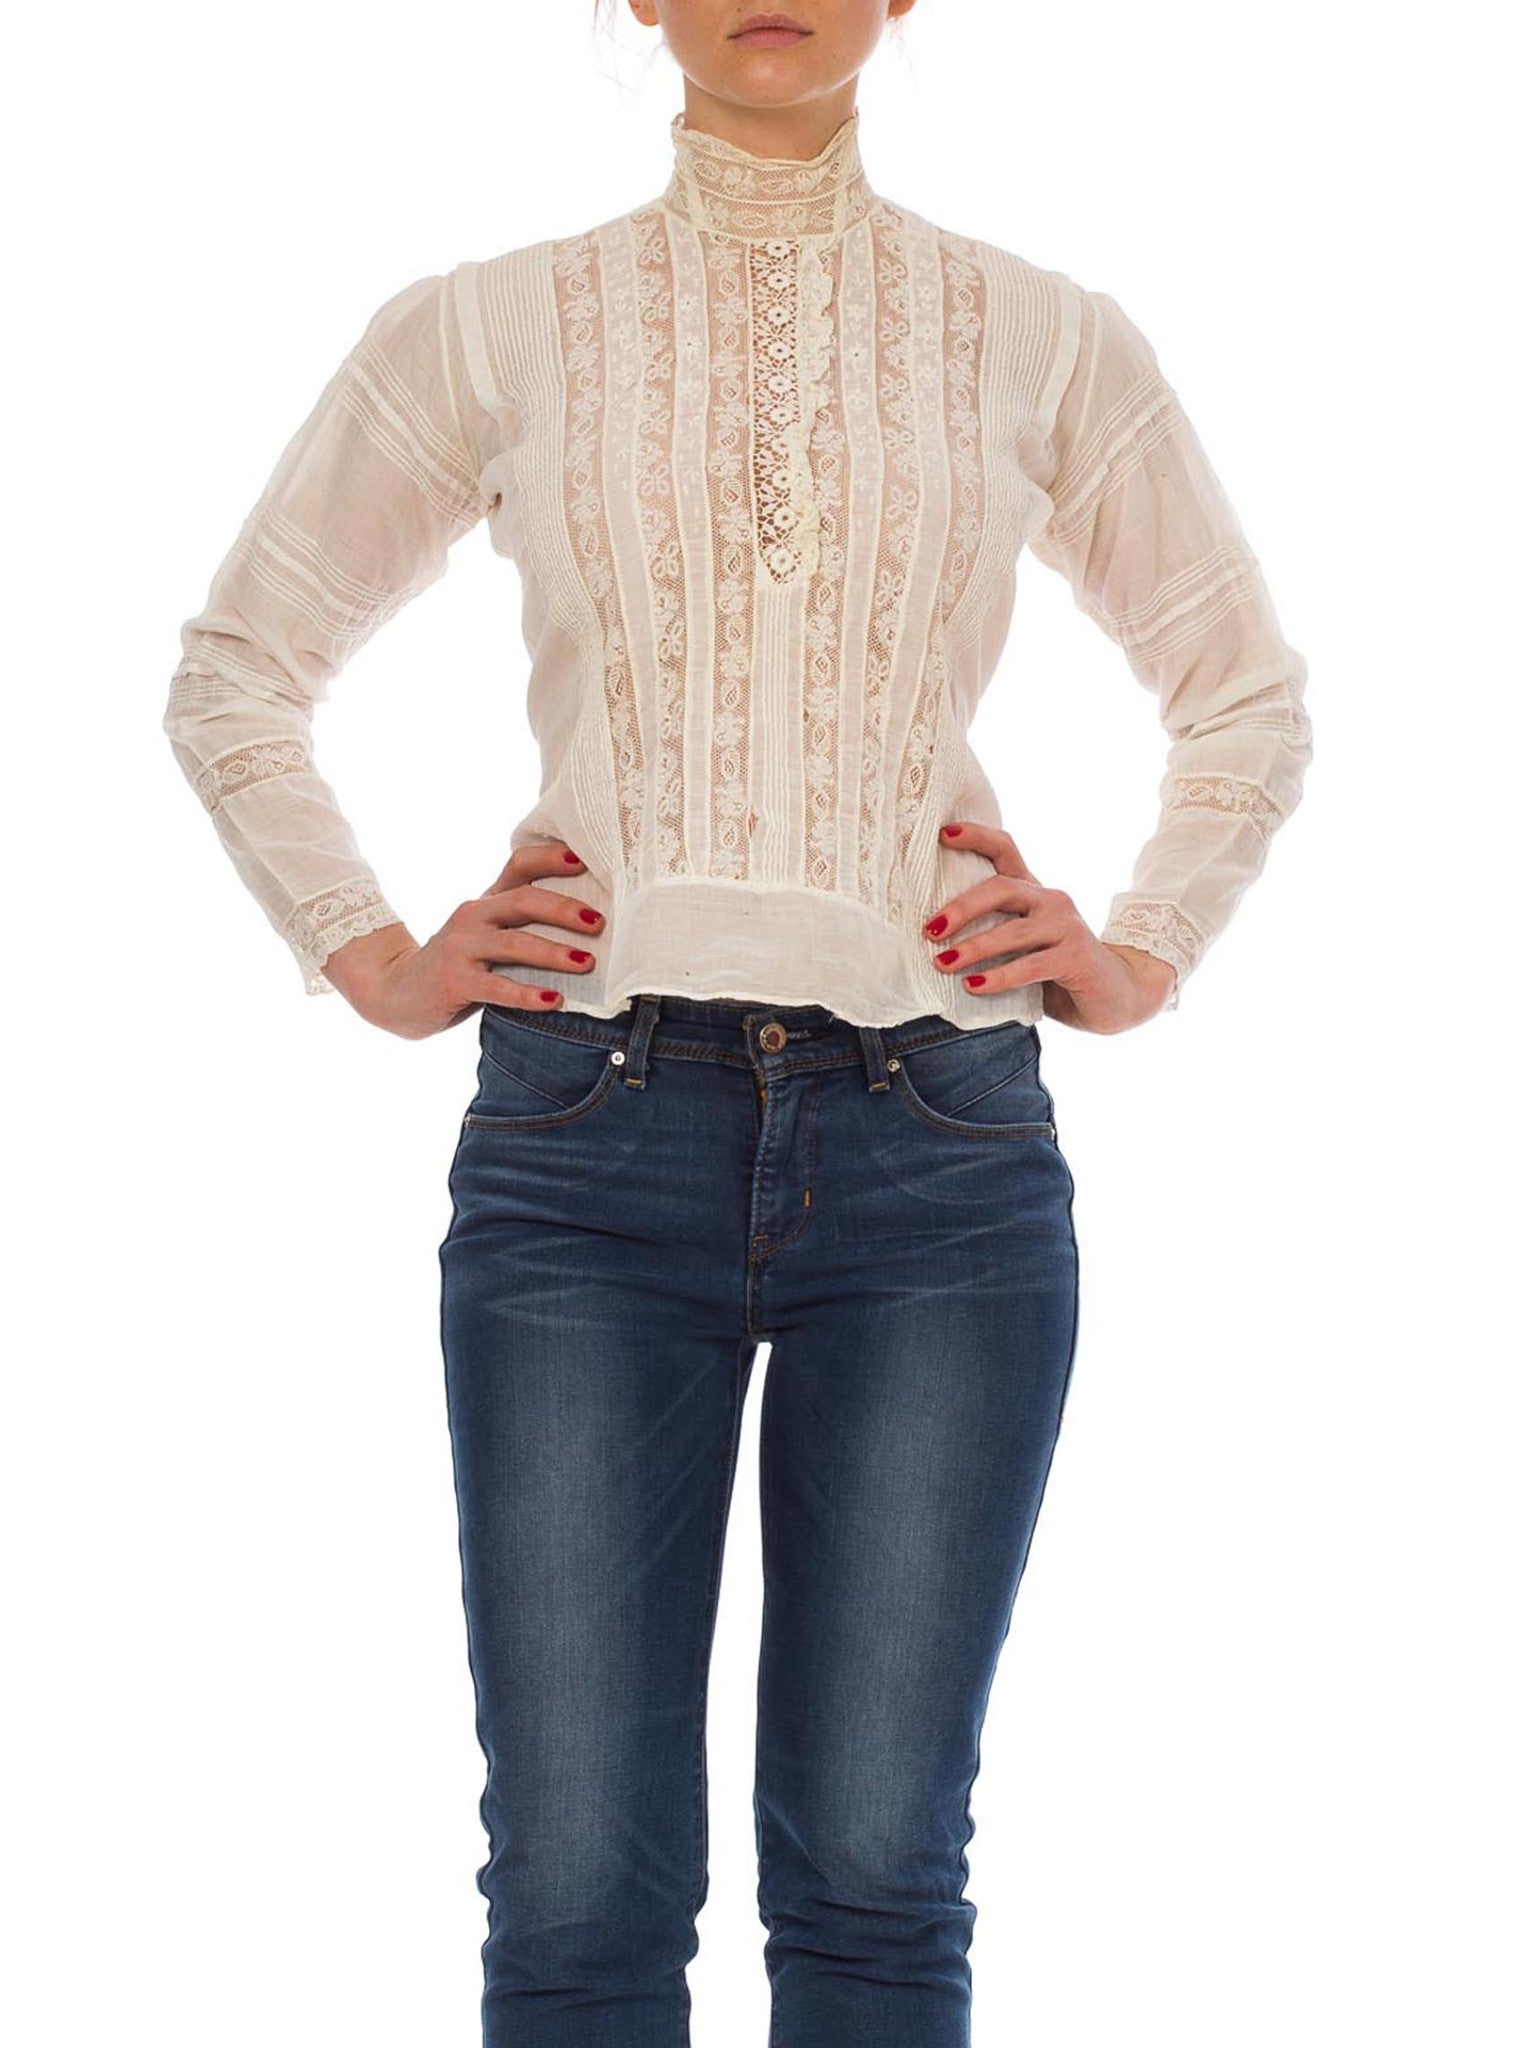 Victorian Cream Cotton & Lace High Swan Neck Blouse With Trim Sleeves Hand-Made Buttons